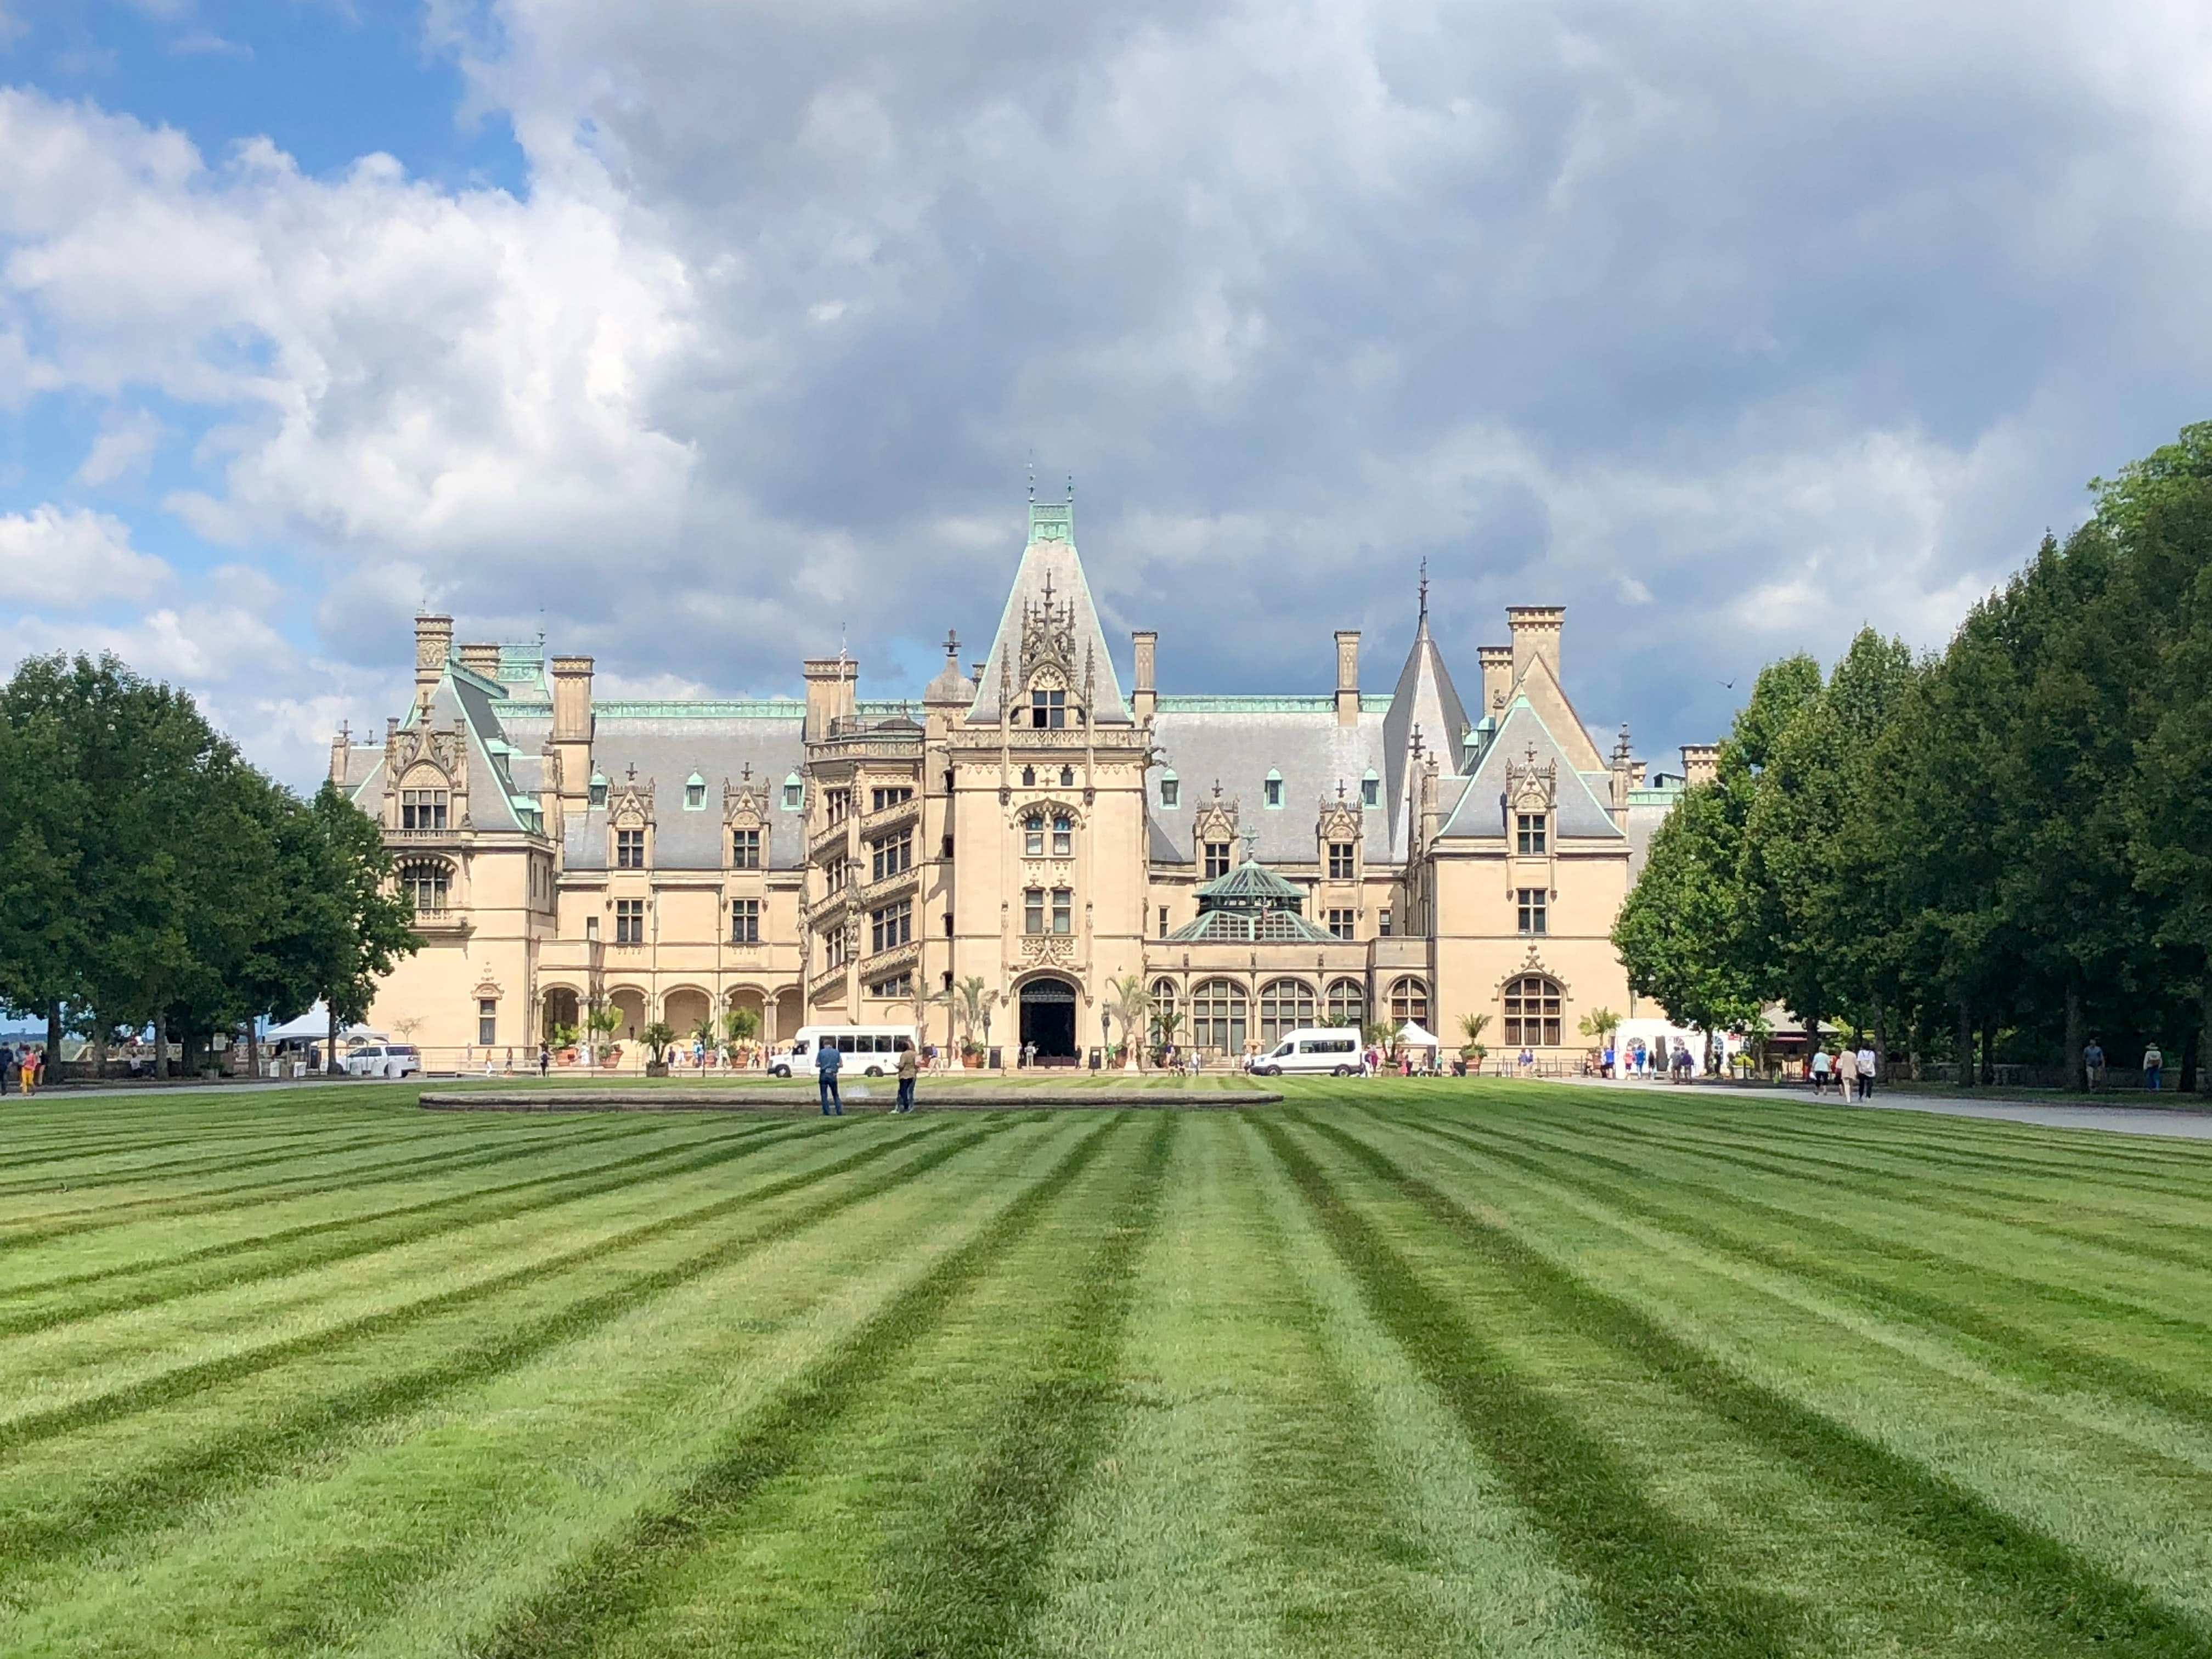 biltmore house under a blue sky